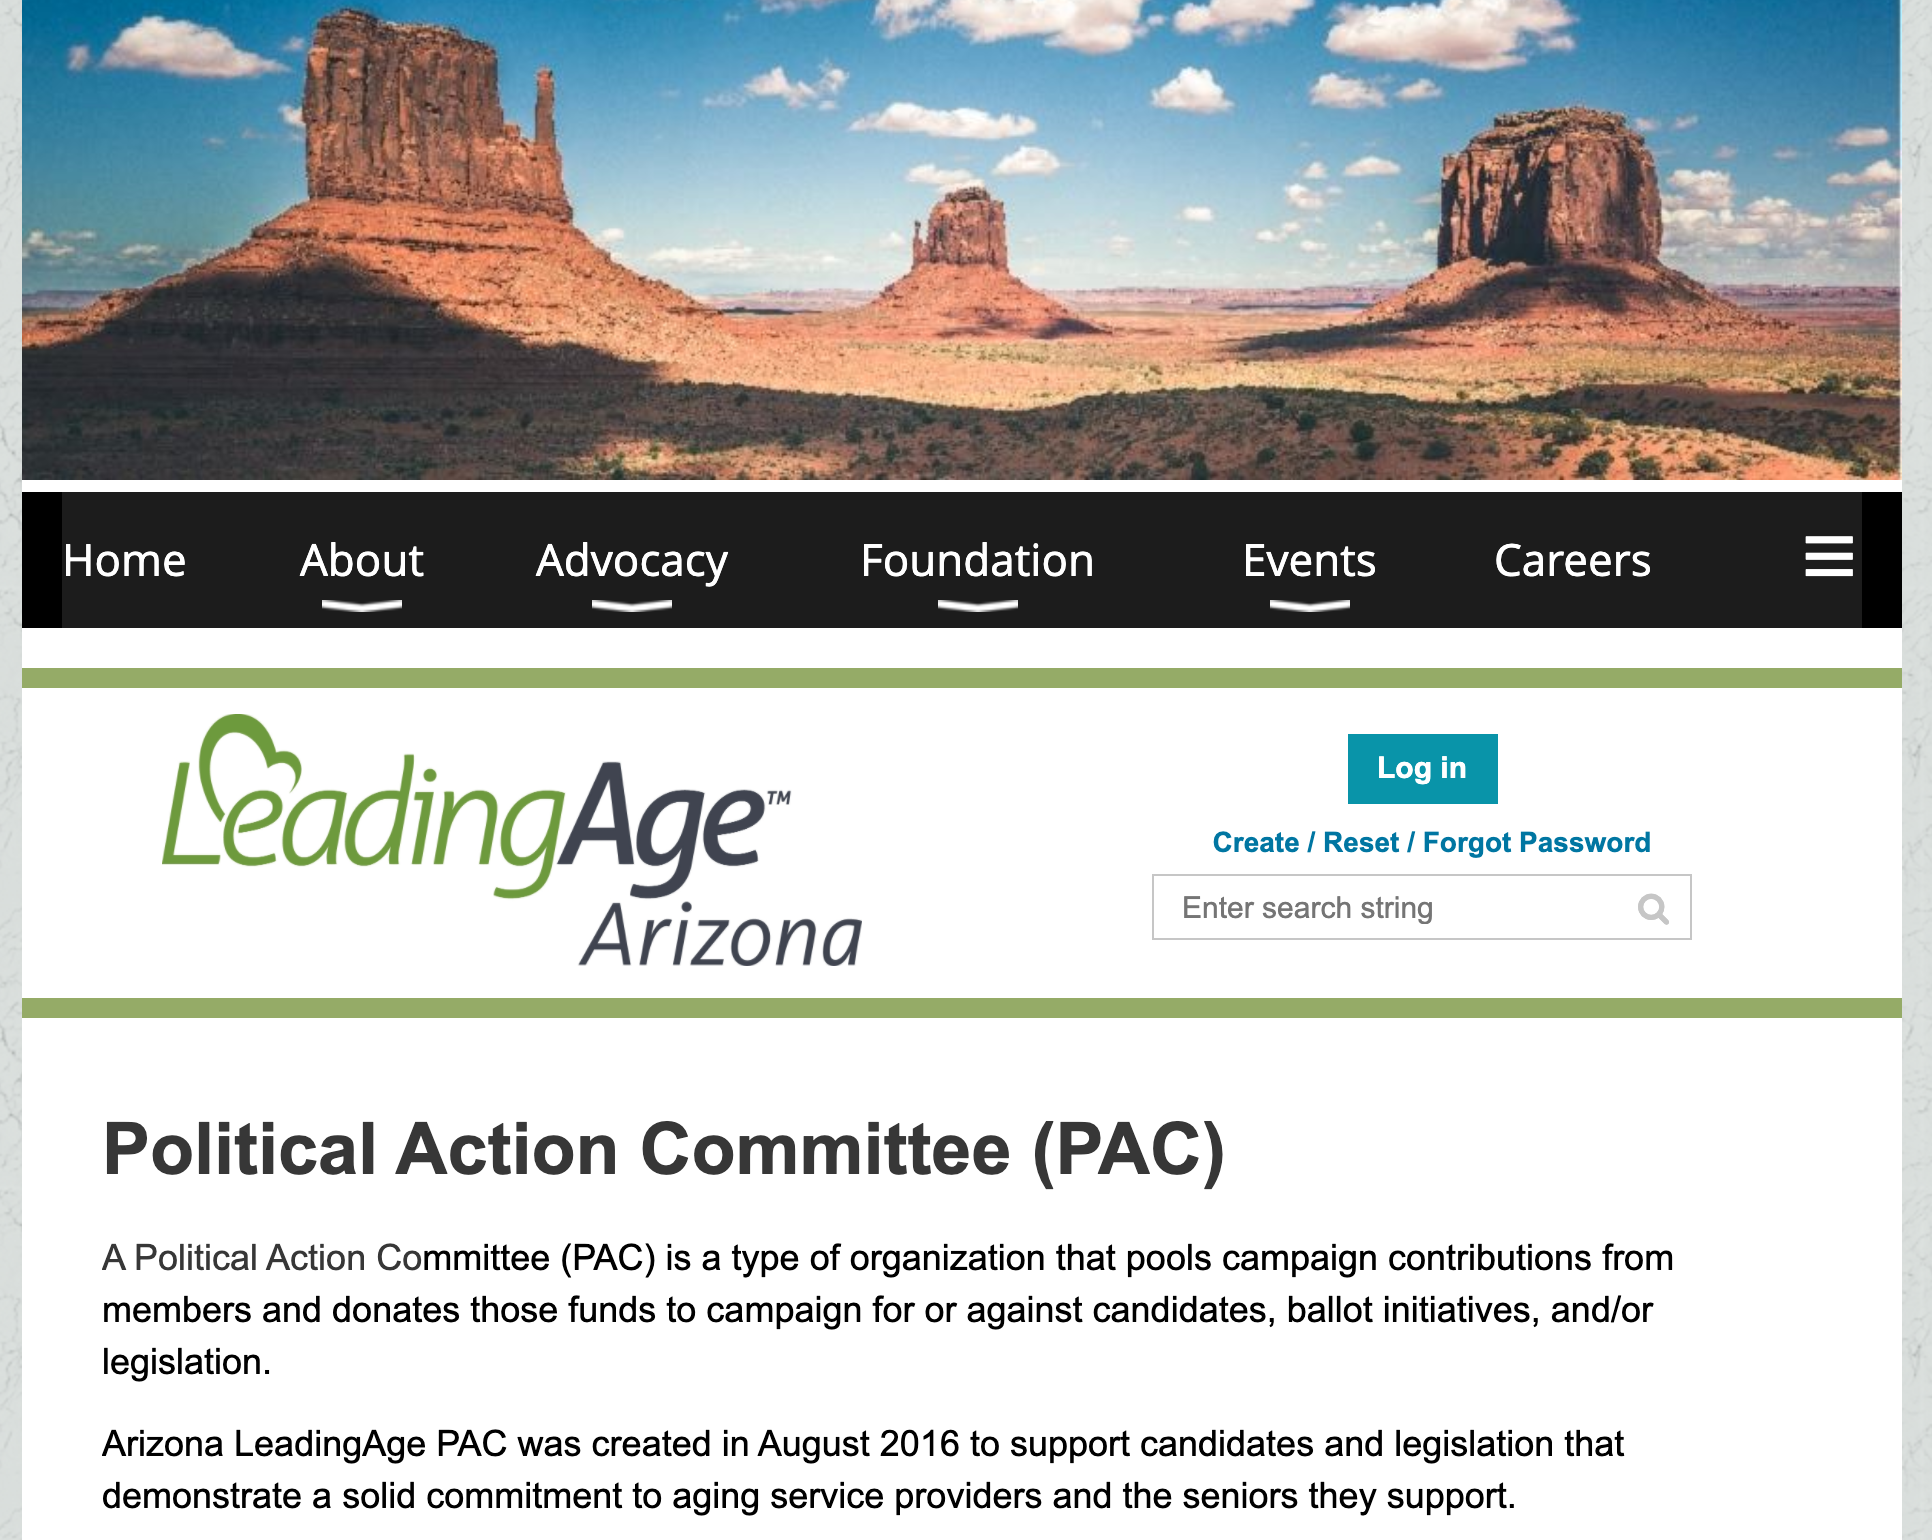 Arizona LeadingAge PAC